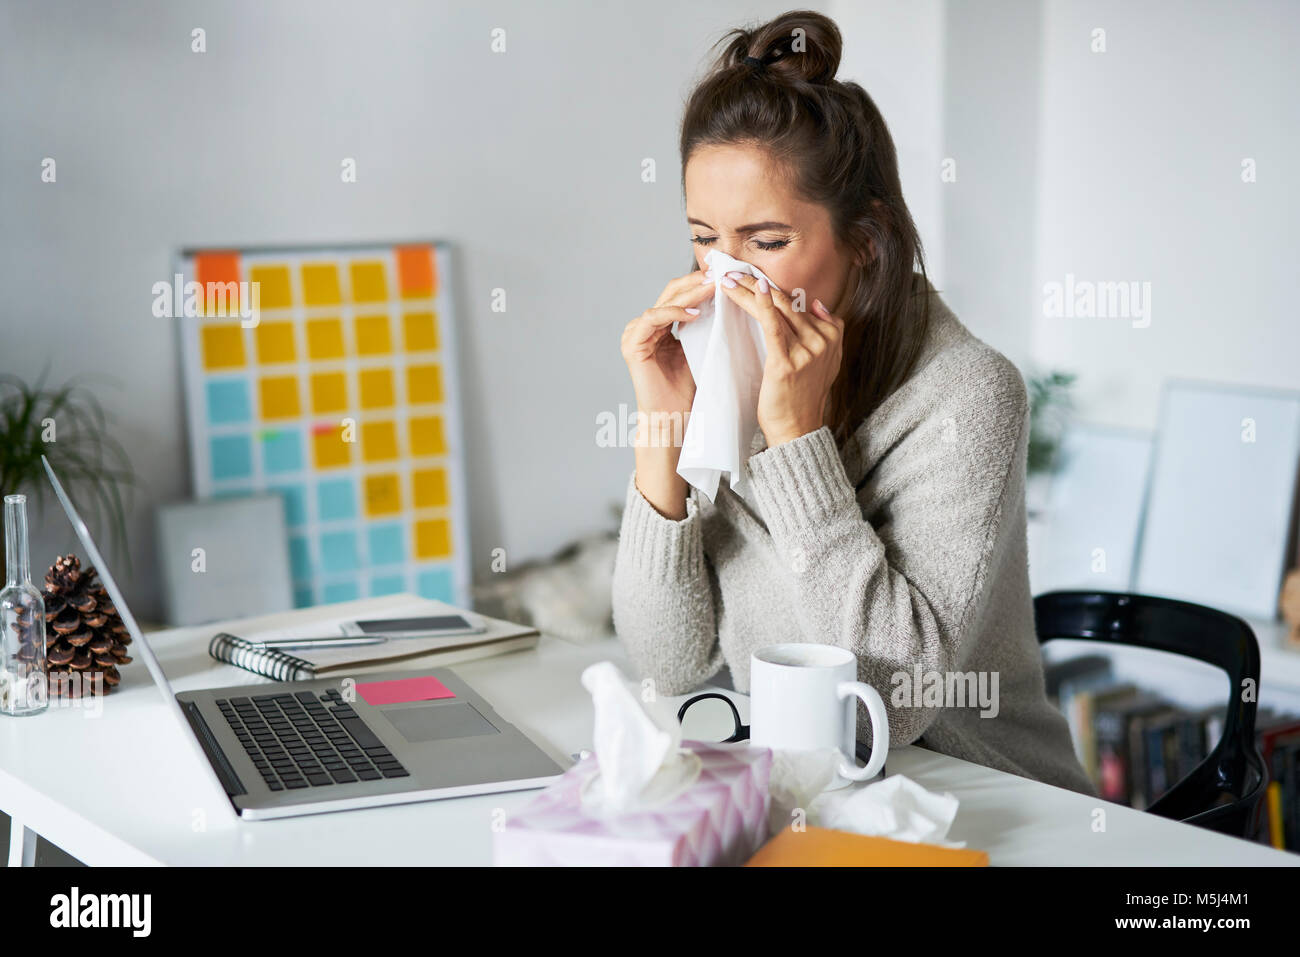 Ill woman at home at desk blowing her nose - Stock Image